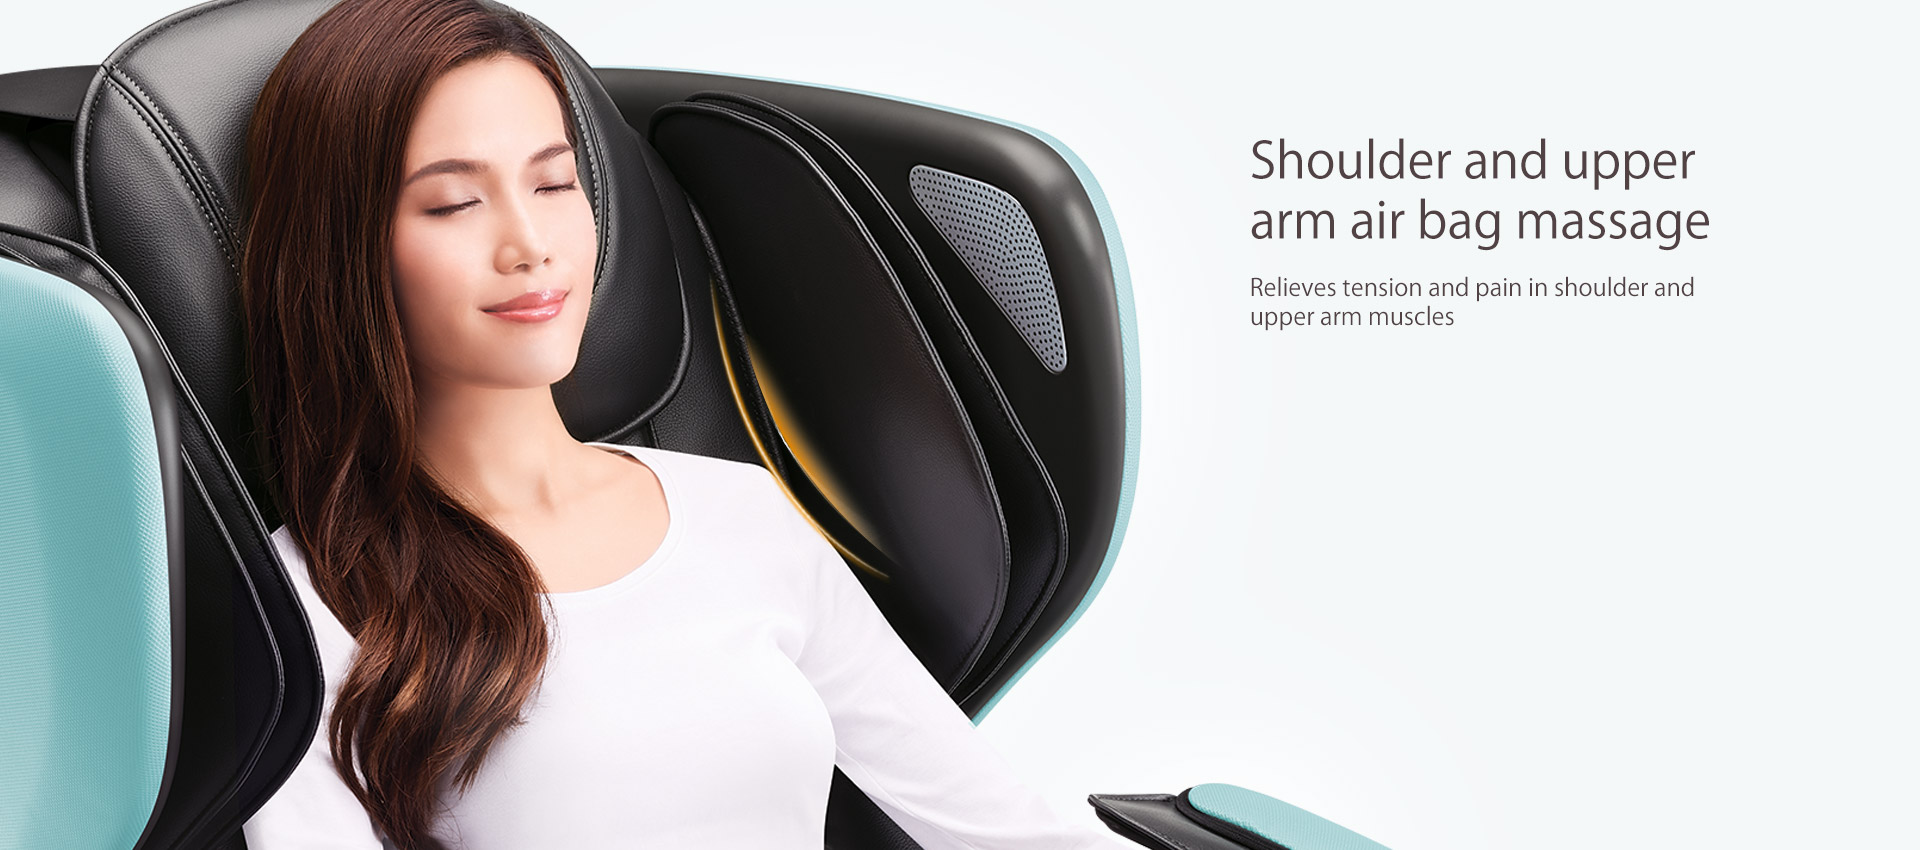 Udivine V Massage Chair Slide 22 191001